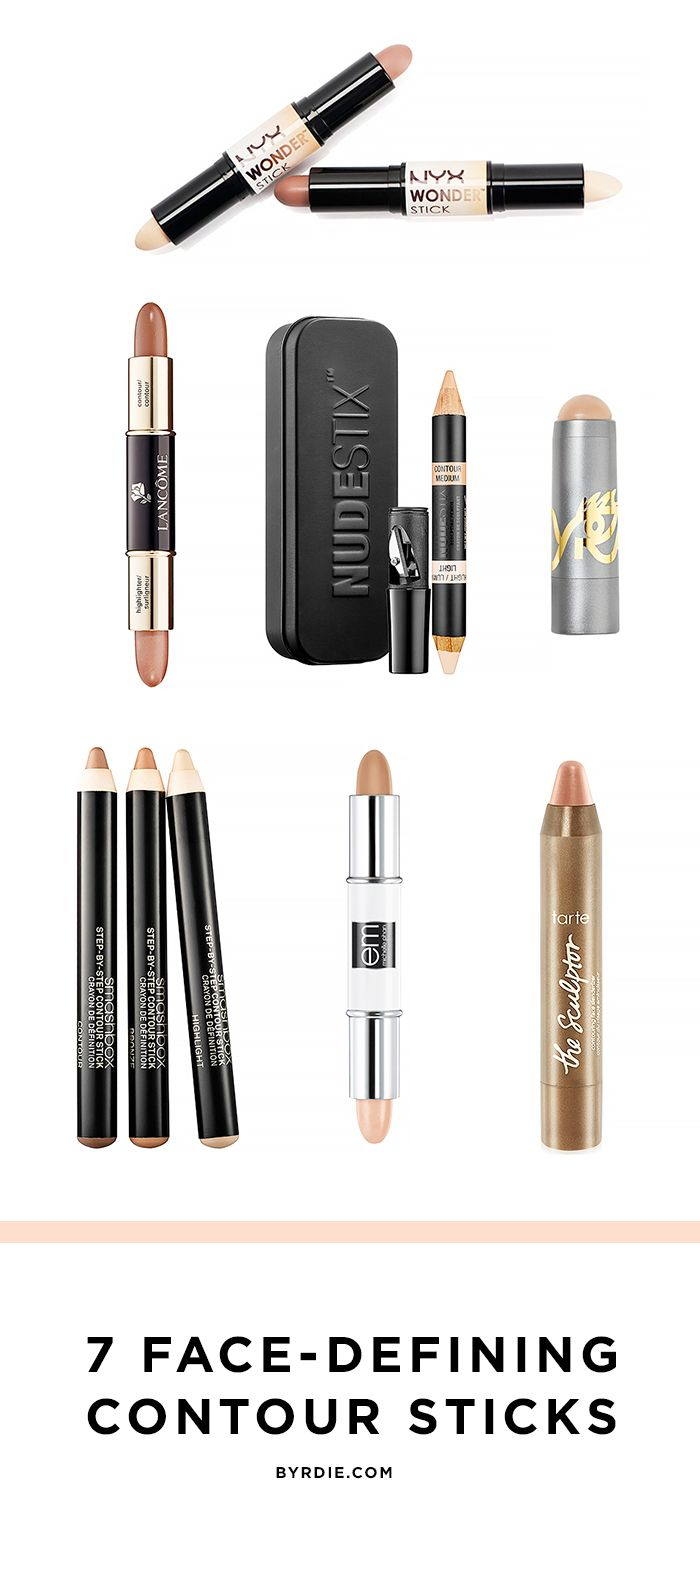 7 Contouring Sticks for an Instantly Chiselled Face